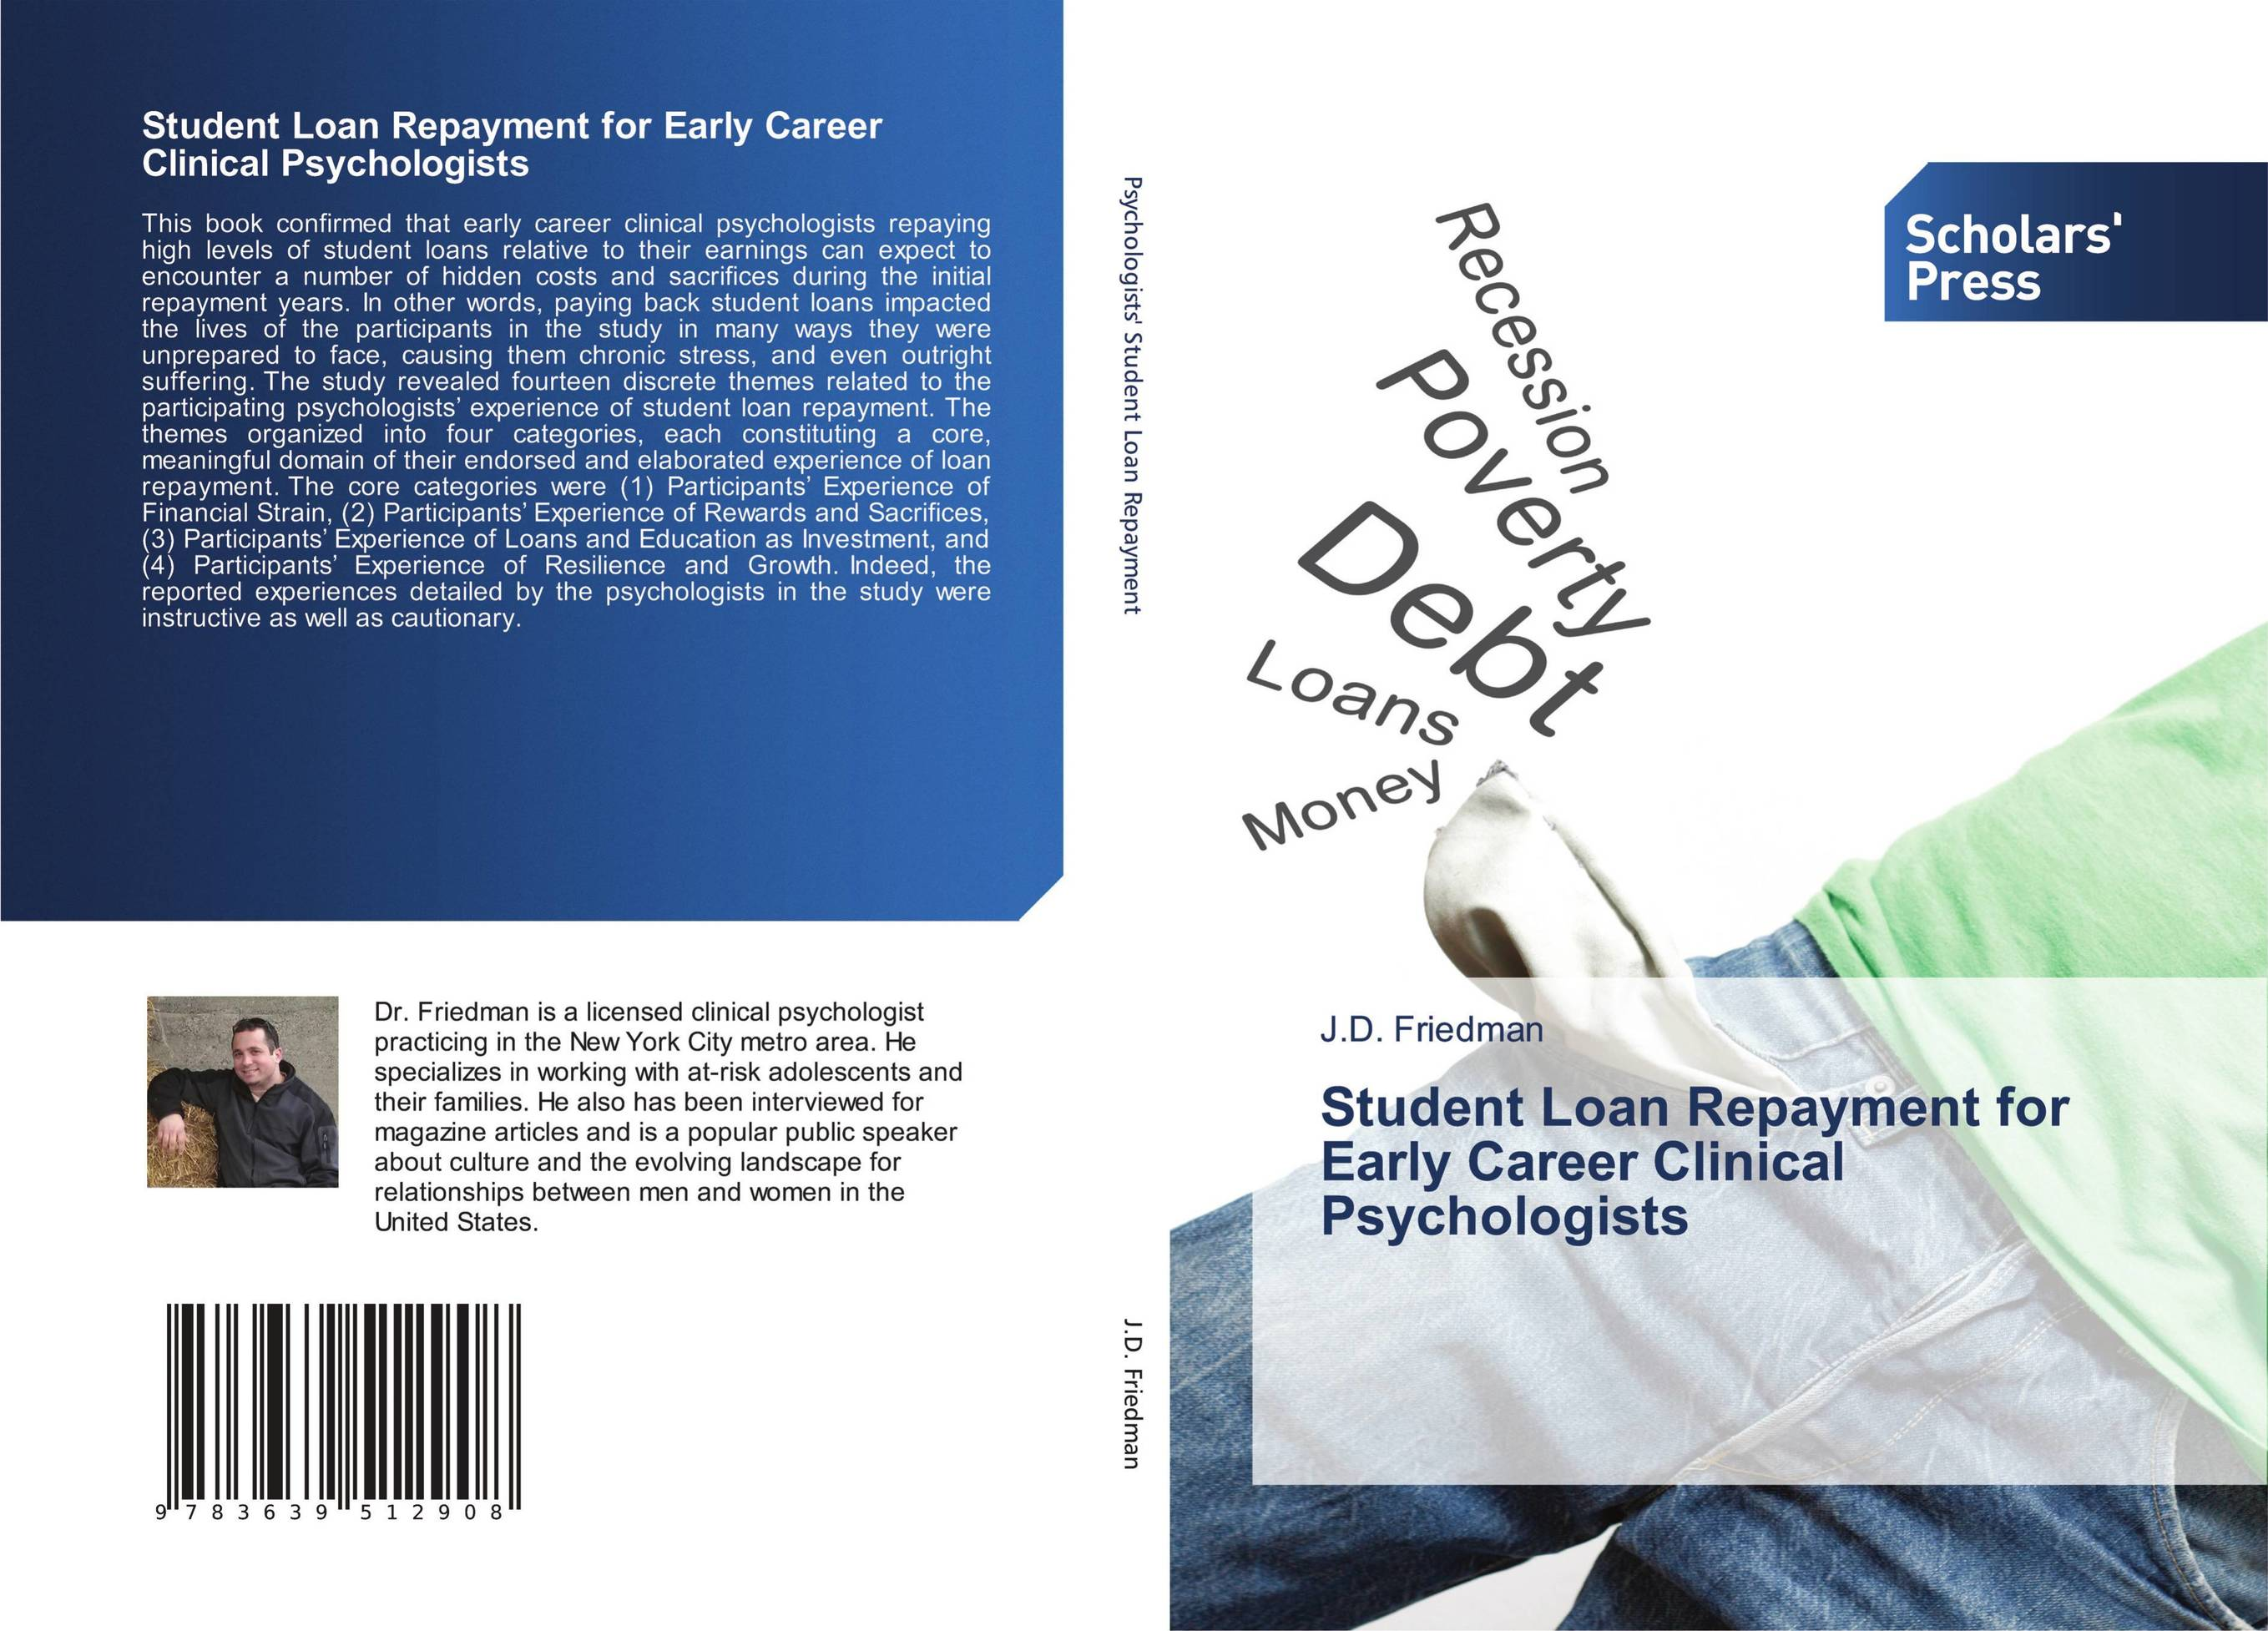 the career of a clinical child psychologist Work alongside other professionals in planning how best to help a child and the child's family, for example in schools, hospitals, children's services and child protection agencies work as part of multidisciplinary teams made up of psychiatrists, psychologists, social workers, paediatric nurses, special educational needs coordinators (sencos.